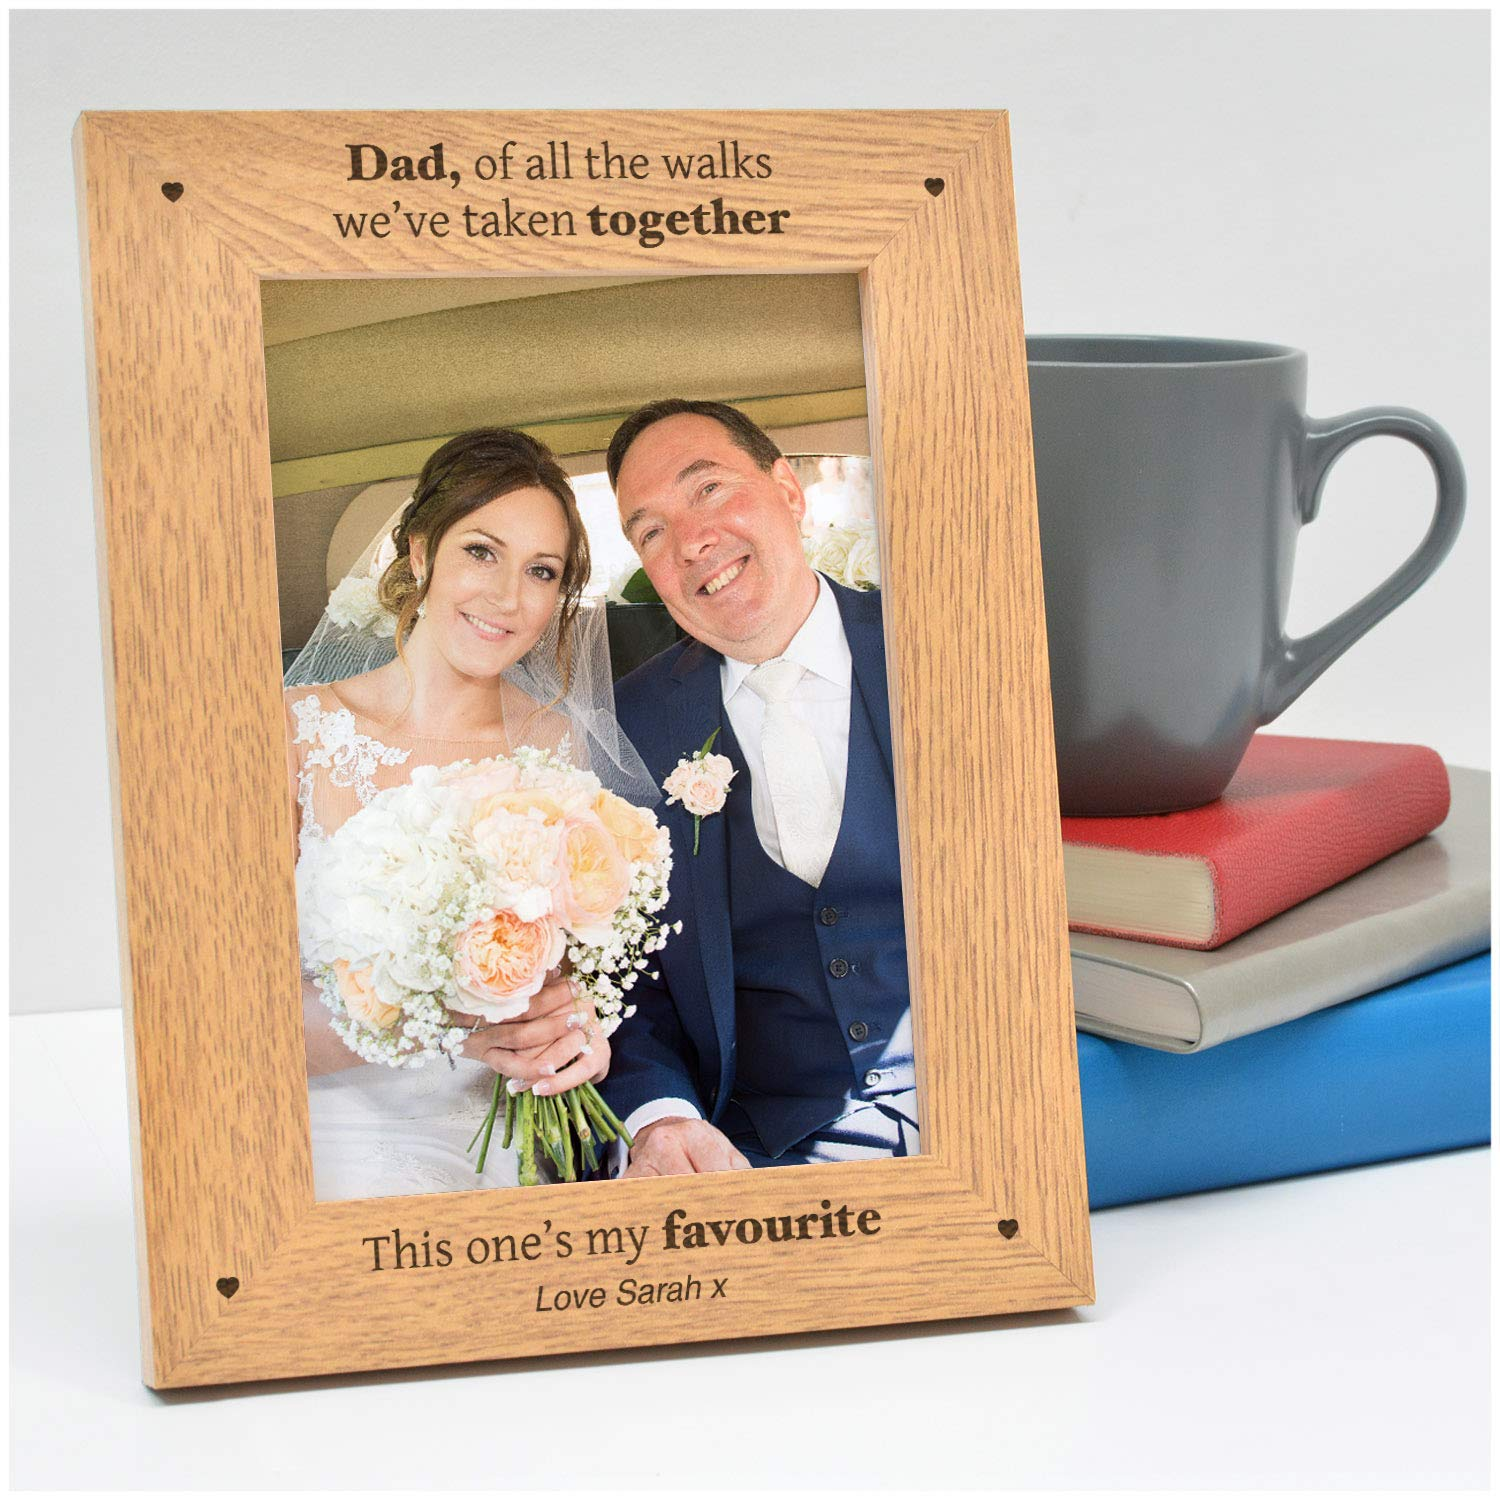 Personalised Father of the Bride Photo Frame Gifts